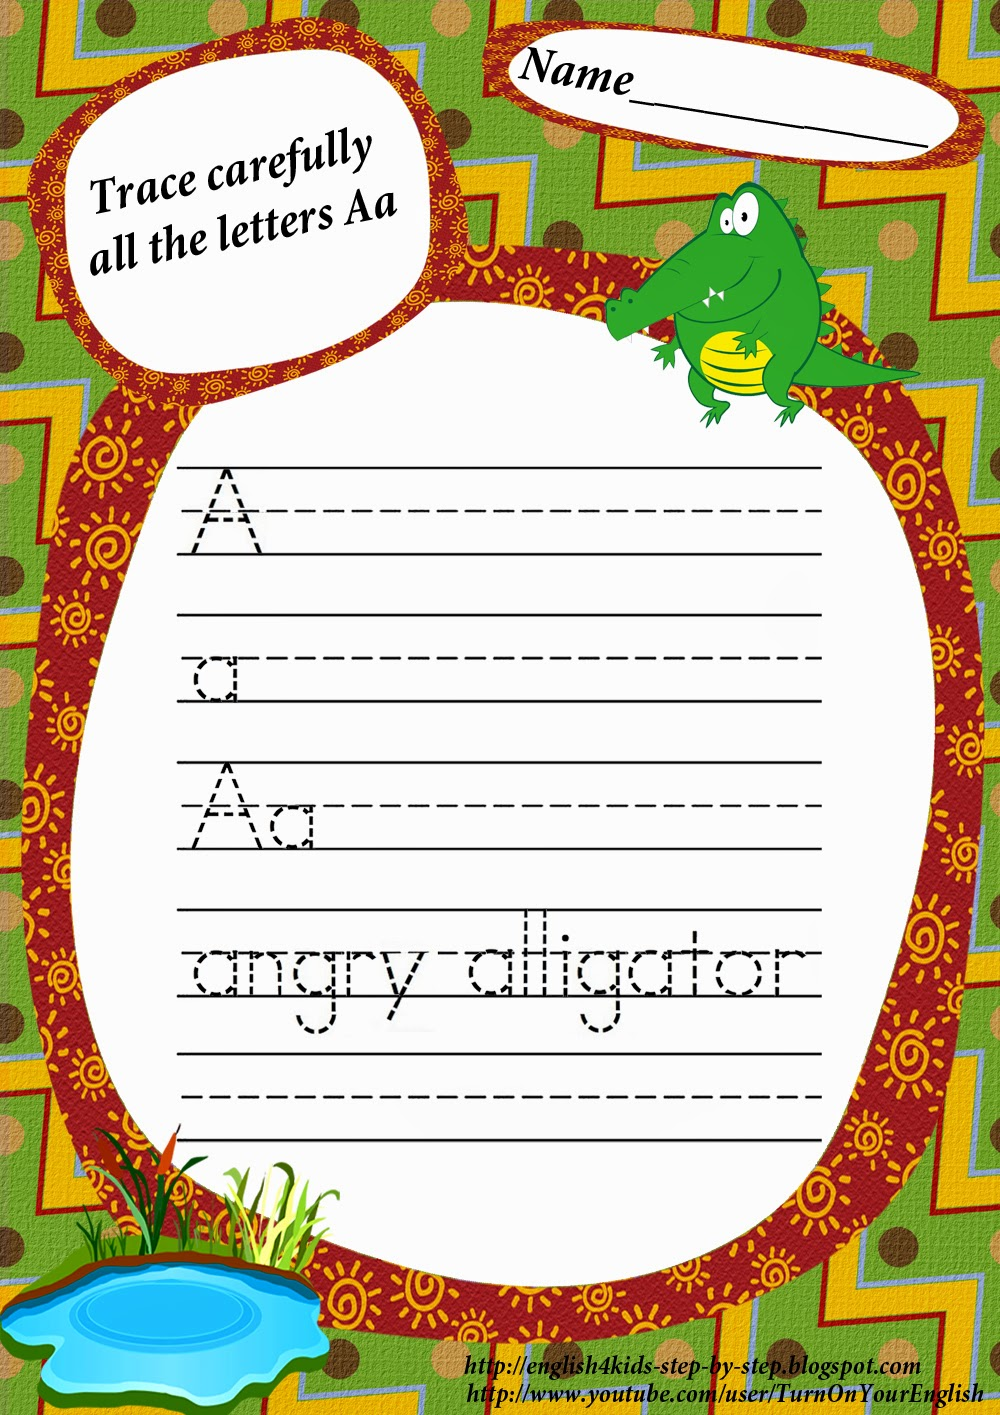 Letter A Song. Alligator Song for Kids Learning English ABC.